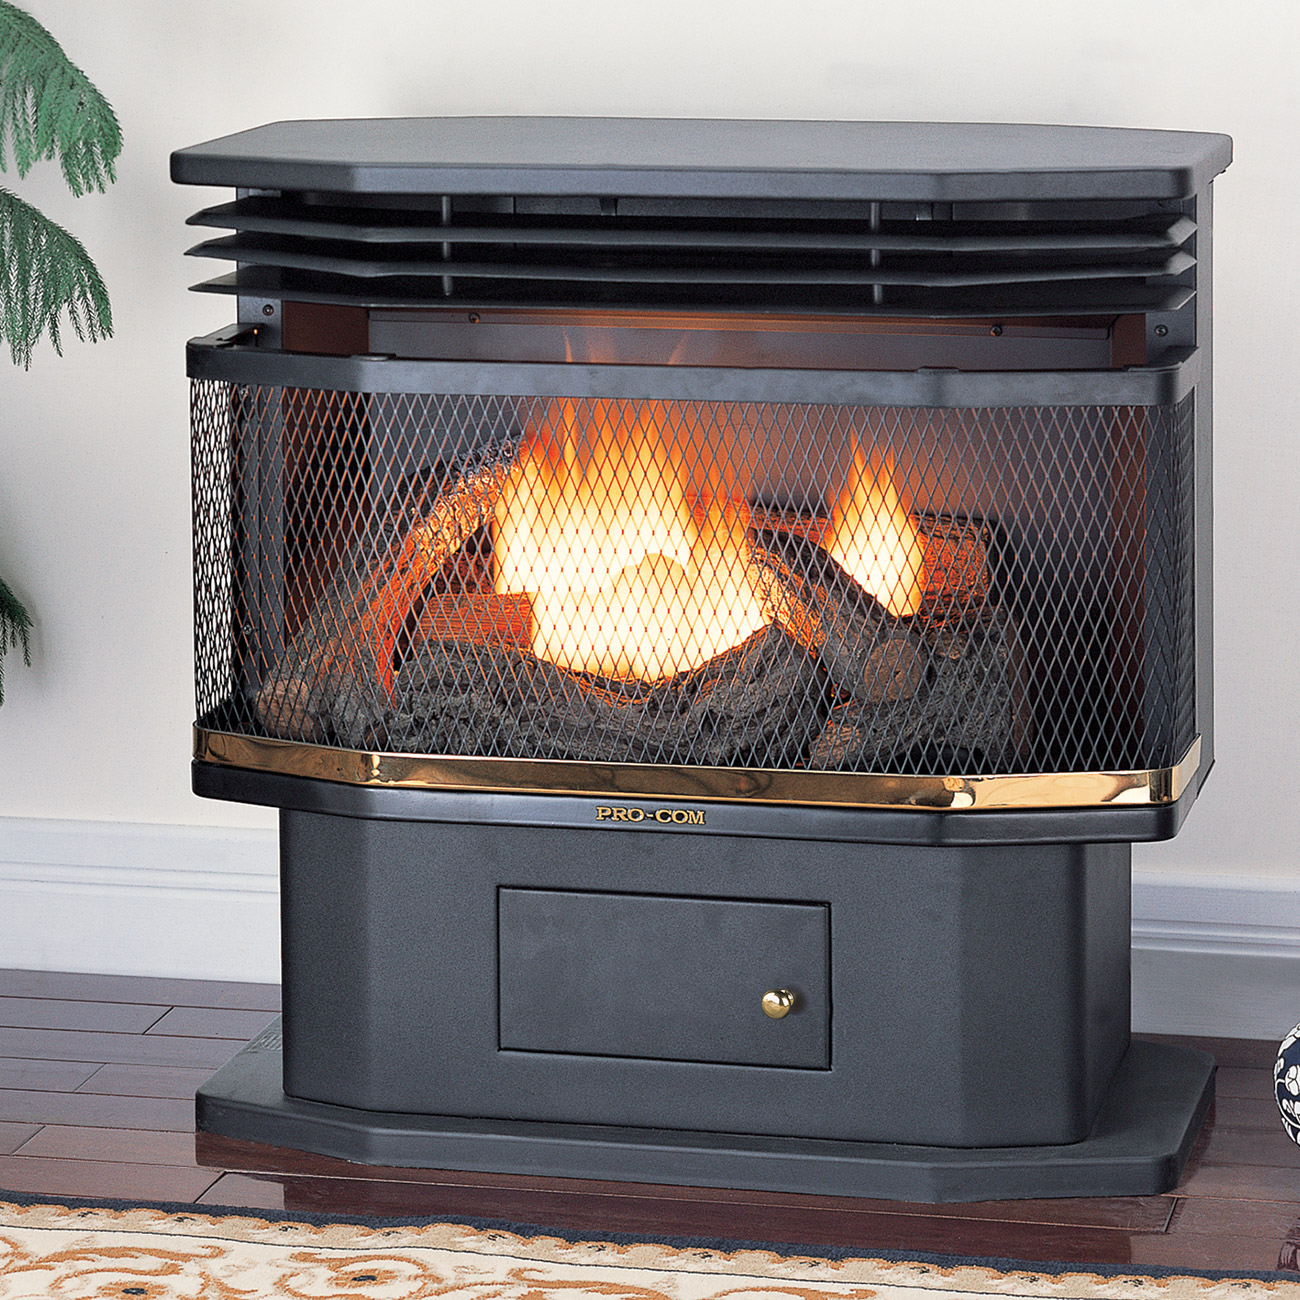 ventless pedestal gas stove model sn400tyla series procom heating